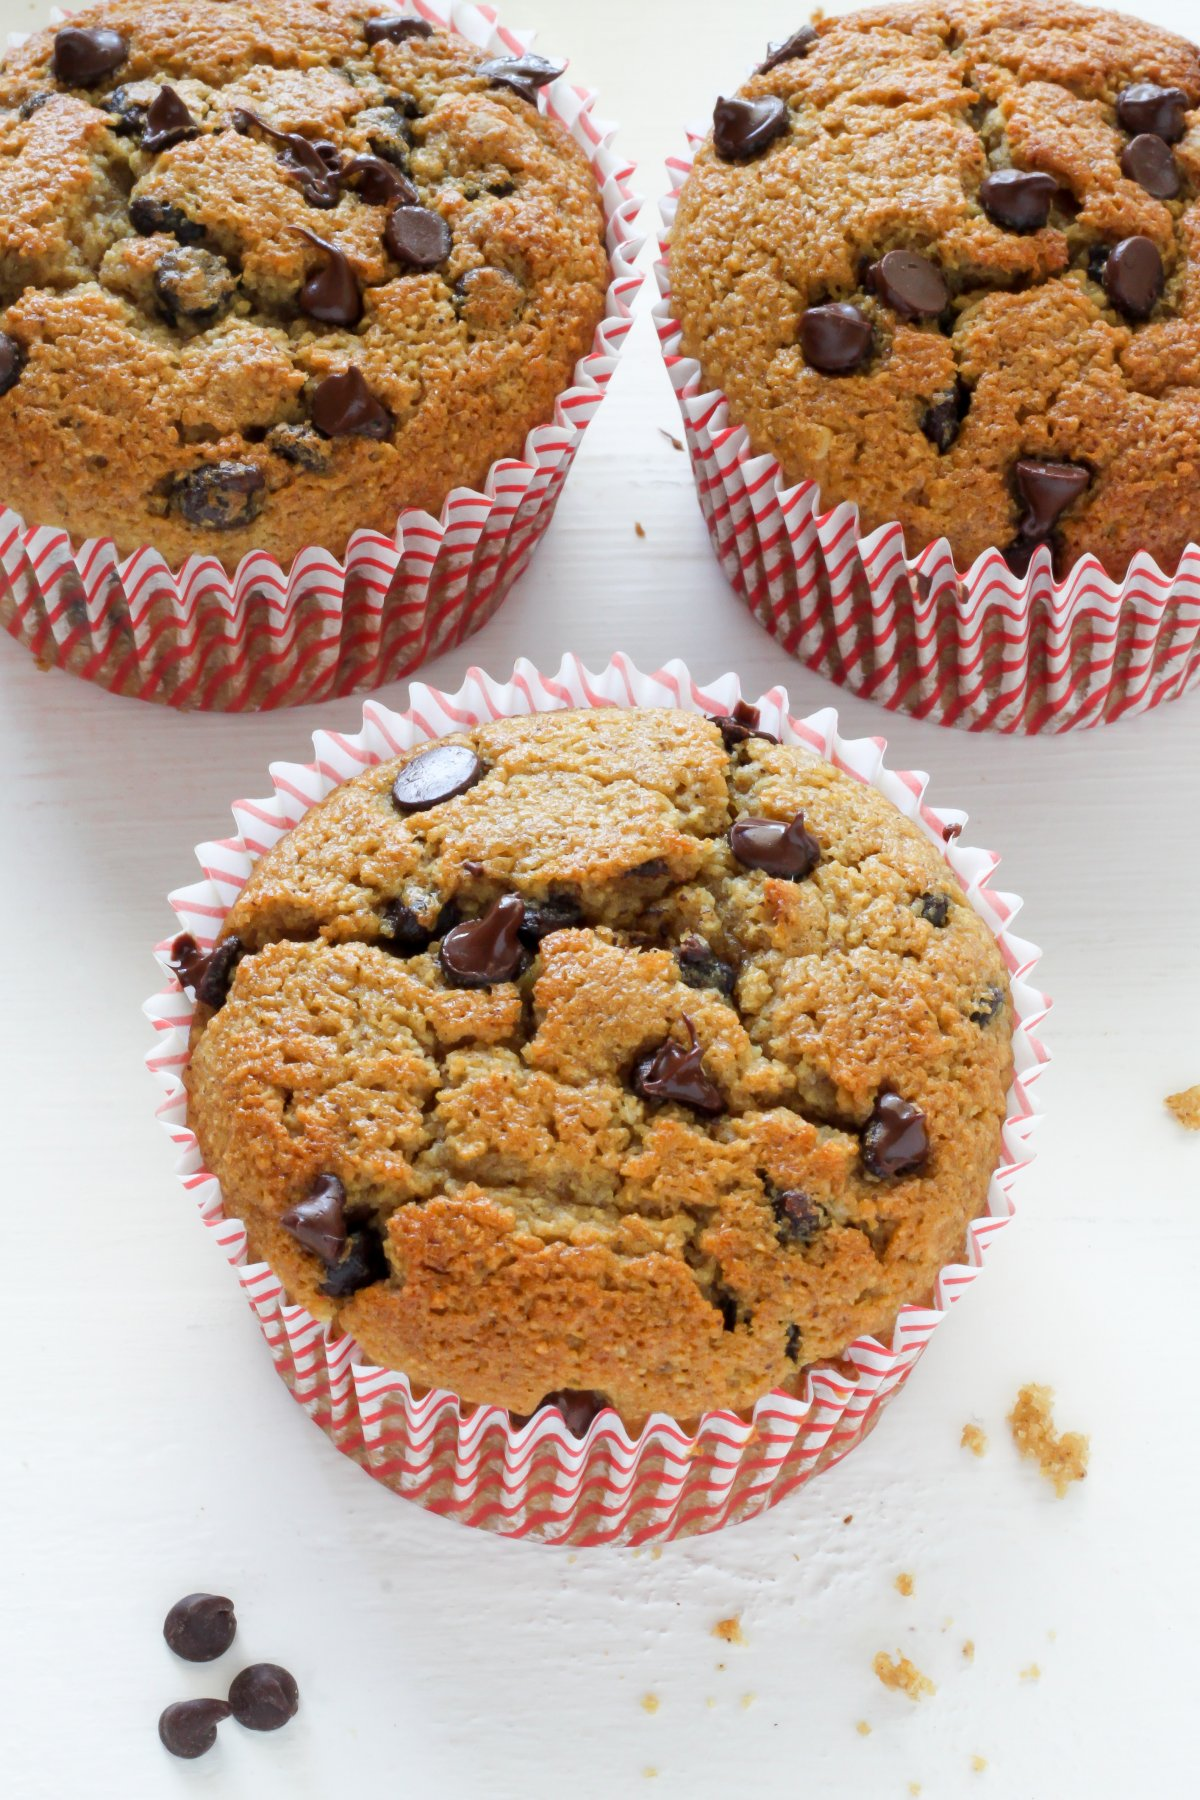 Chocolate chip muffins recipe healthy